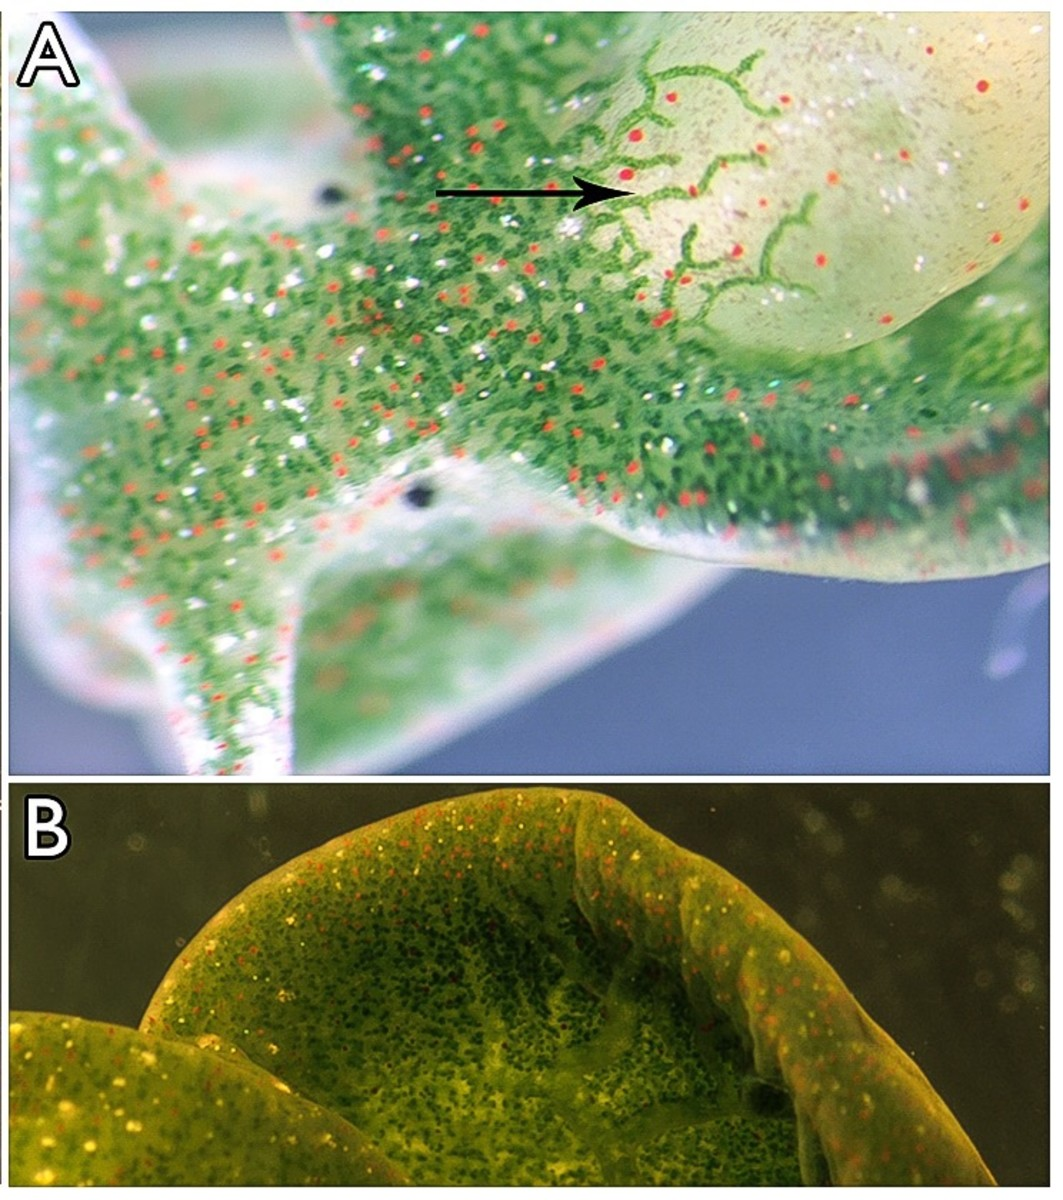 These photos show a magnified view of the eastern emerald elysia. The arrow is pointing to one of the chloroplast-filled branches of the digestive tract in the parapodia.